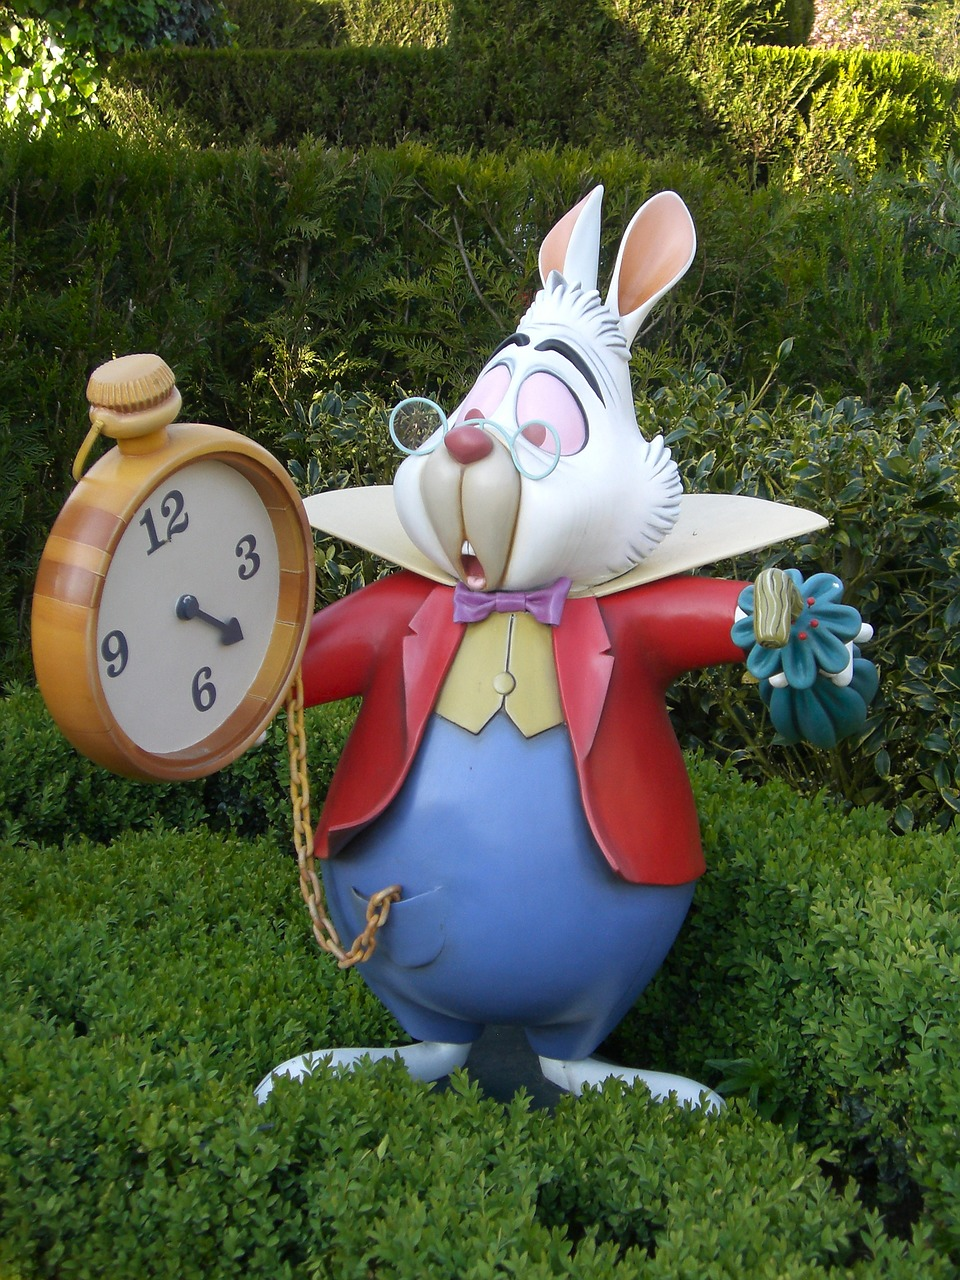 Alice in Wonderland for the first time - Rabbit